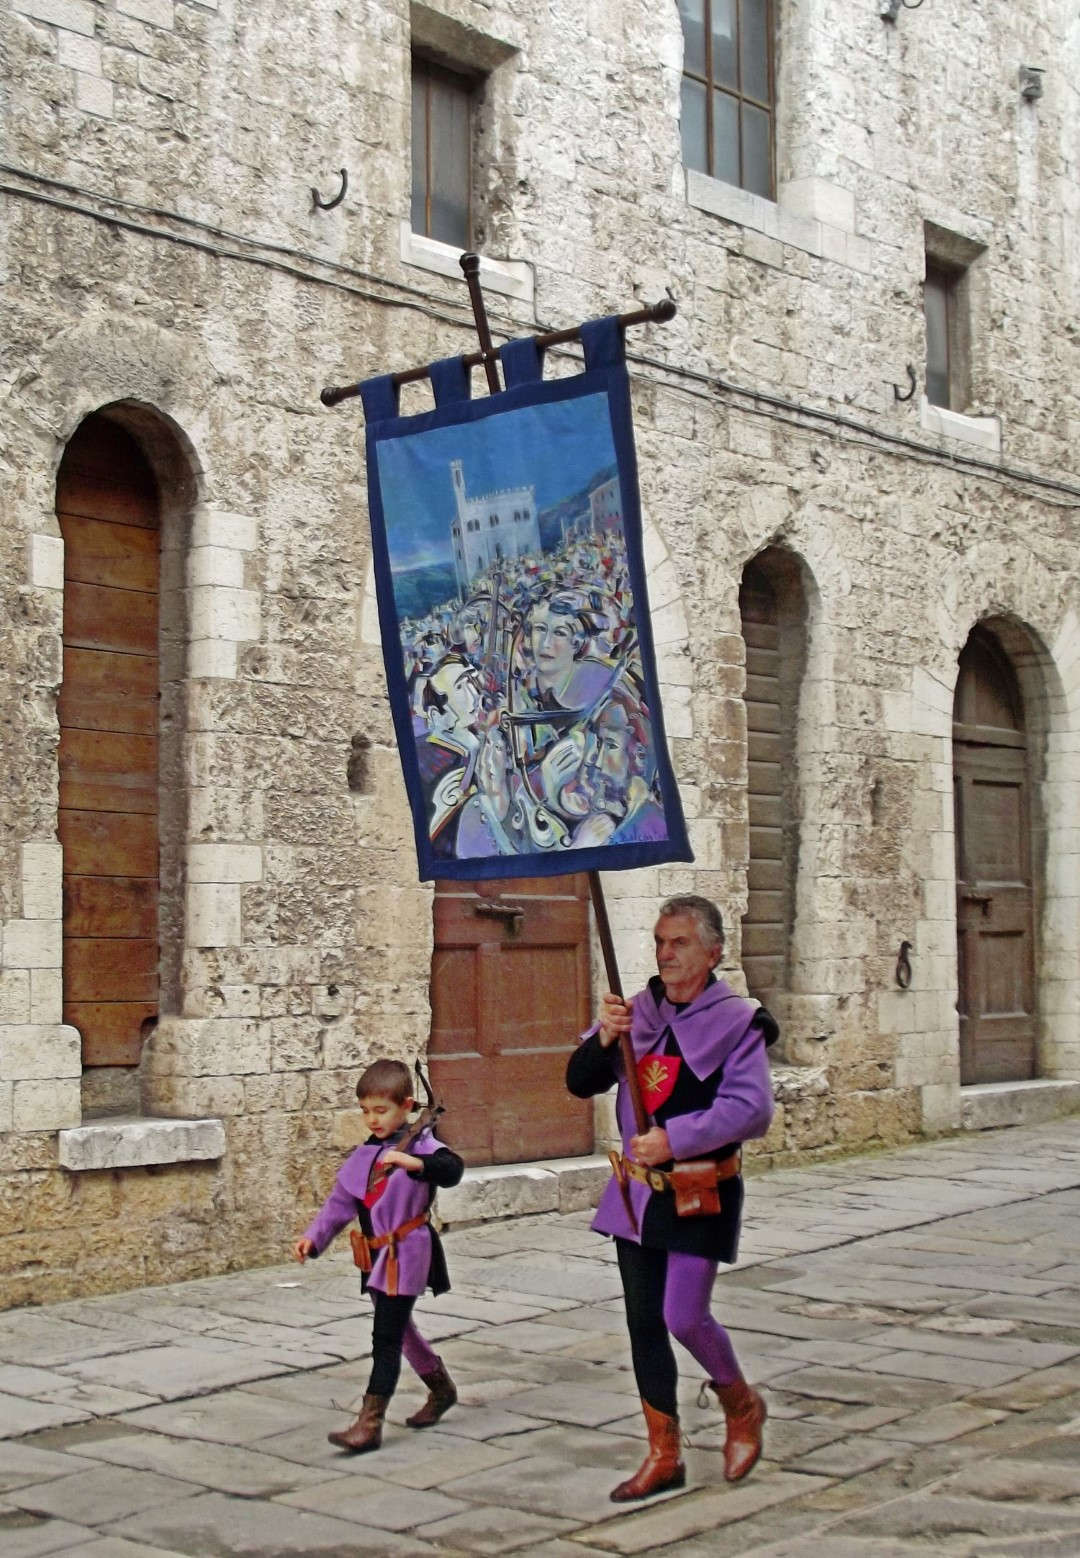 Man and young boy in purple and black with banner